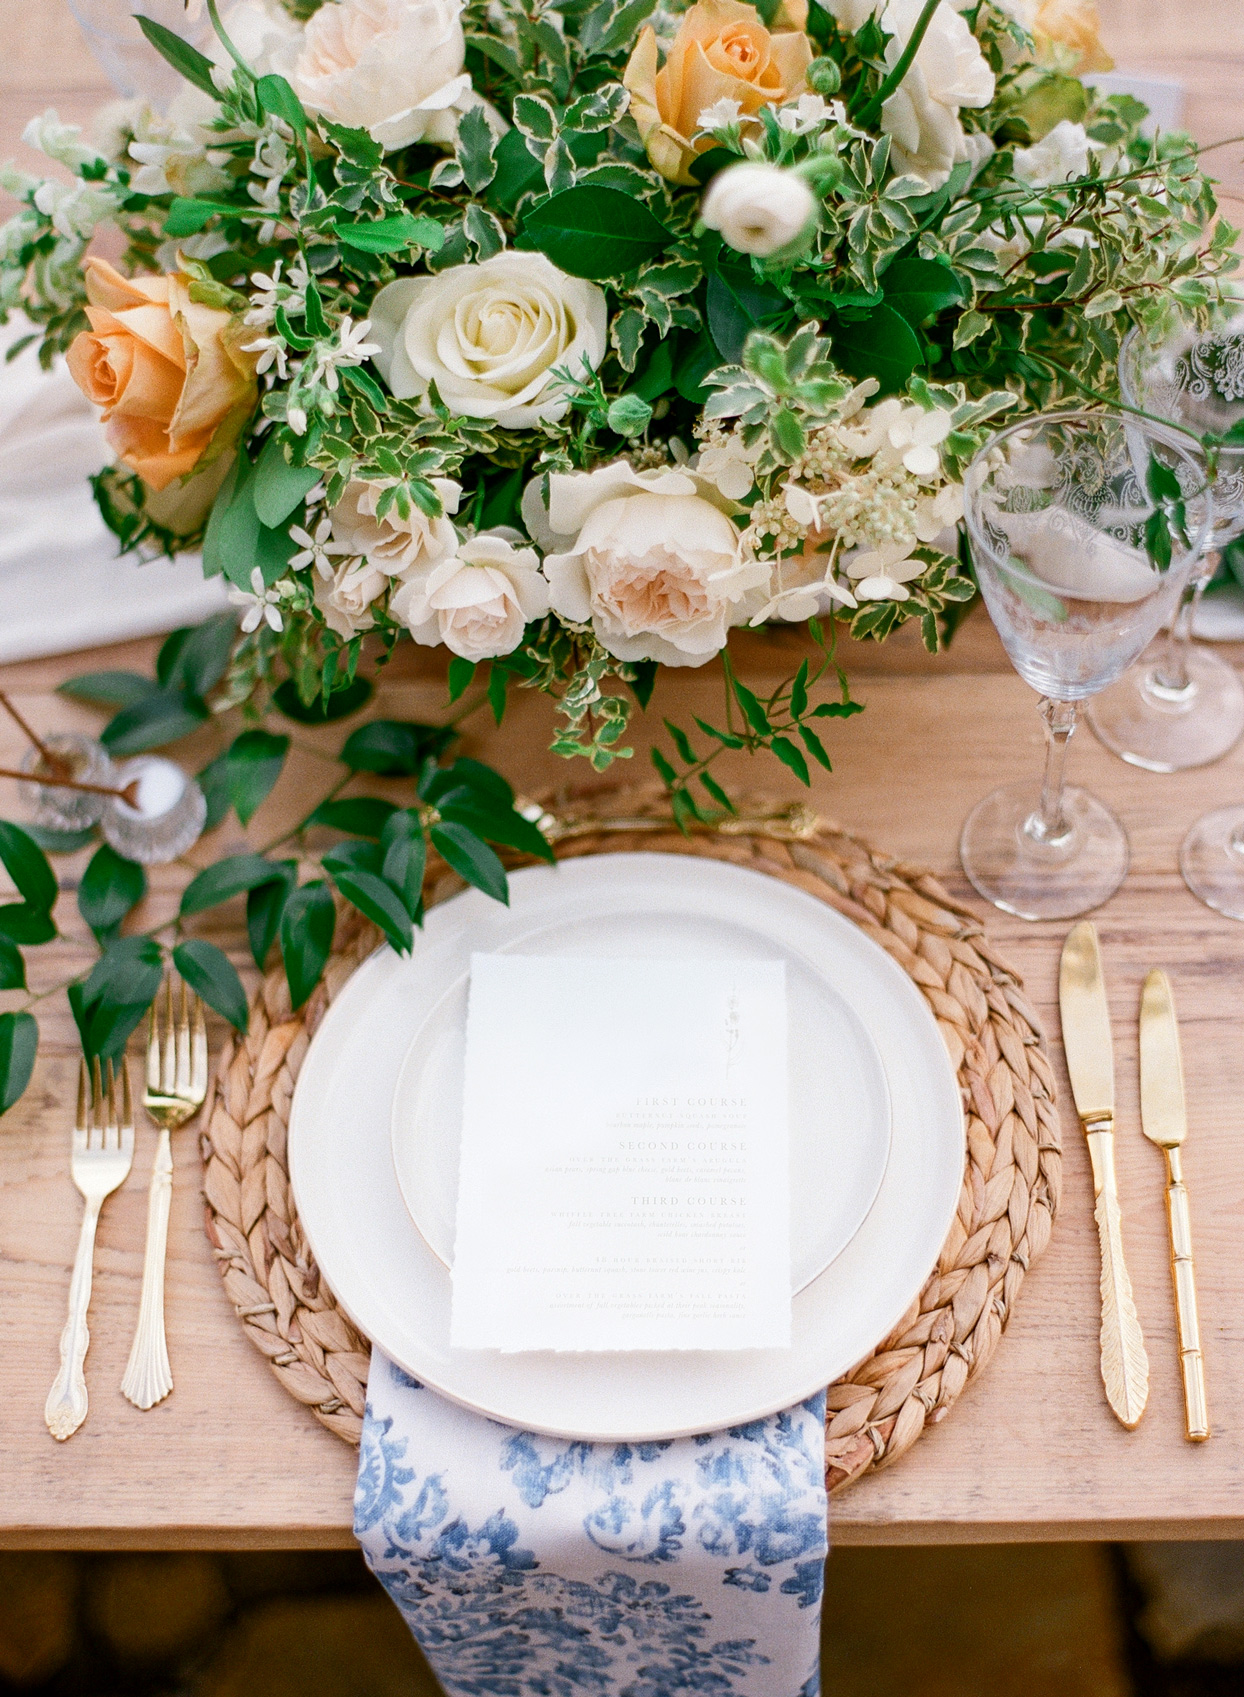 gold cutlery and blue floral linen wedding place settings